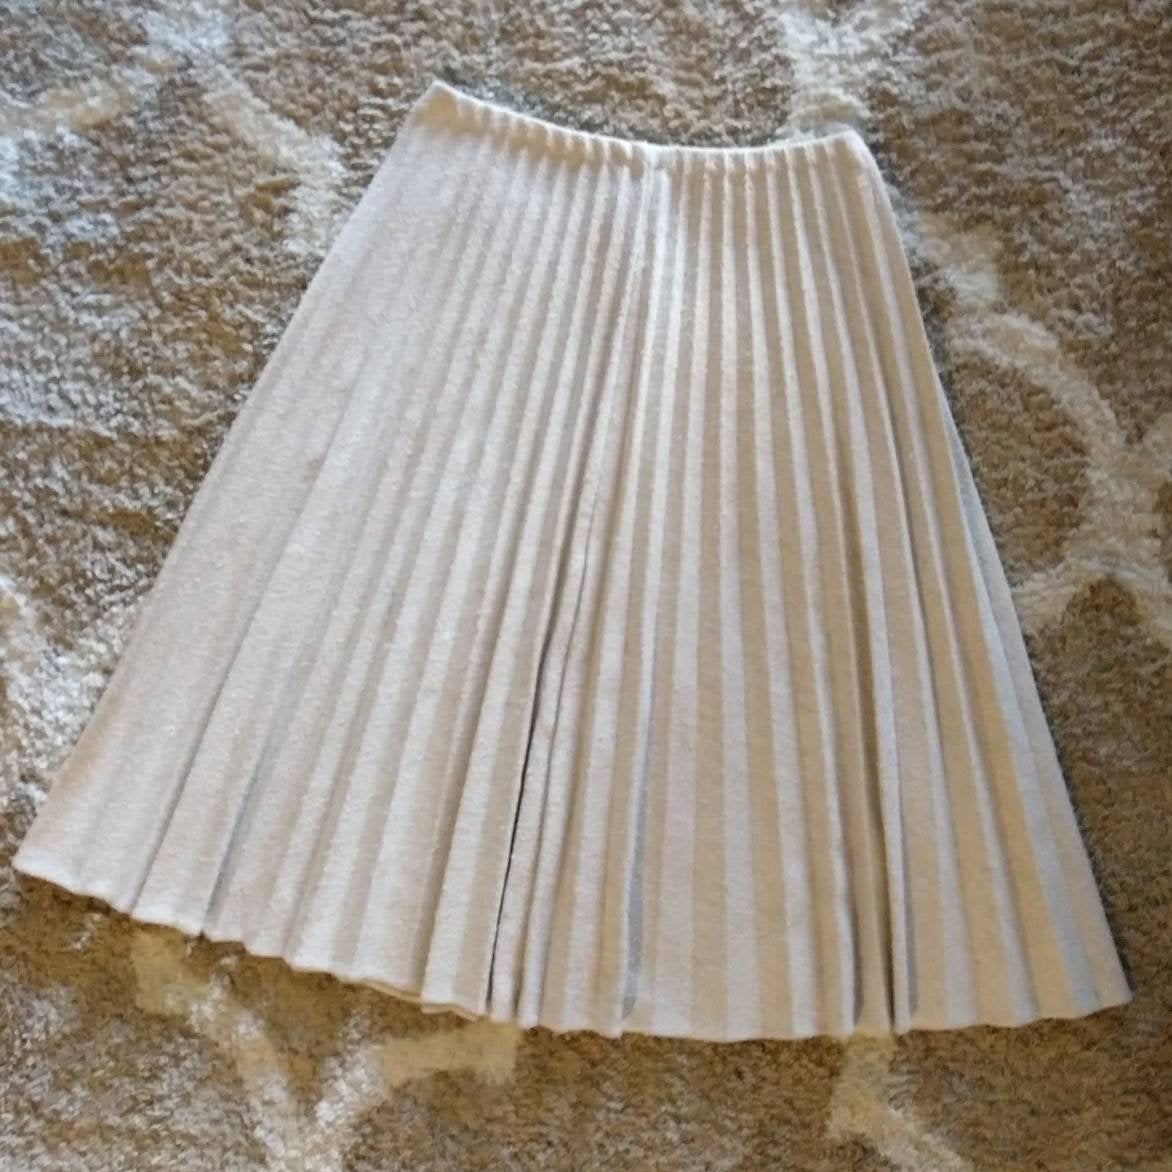 SOFTLY PLEATED knit 1970s SKIRT 70s S M (G6)